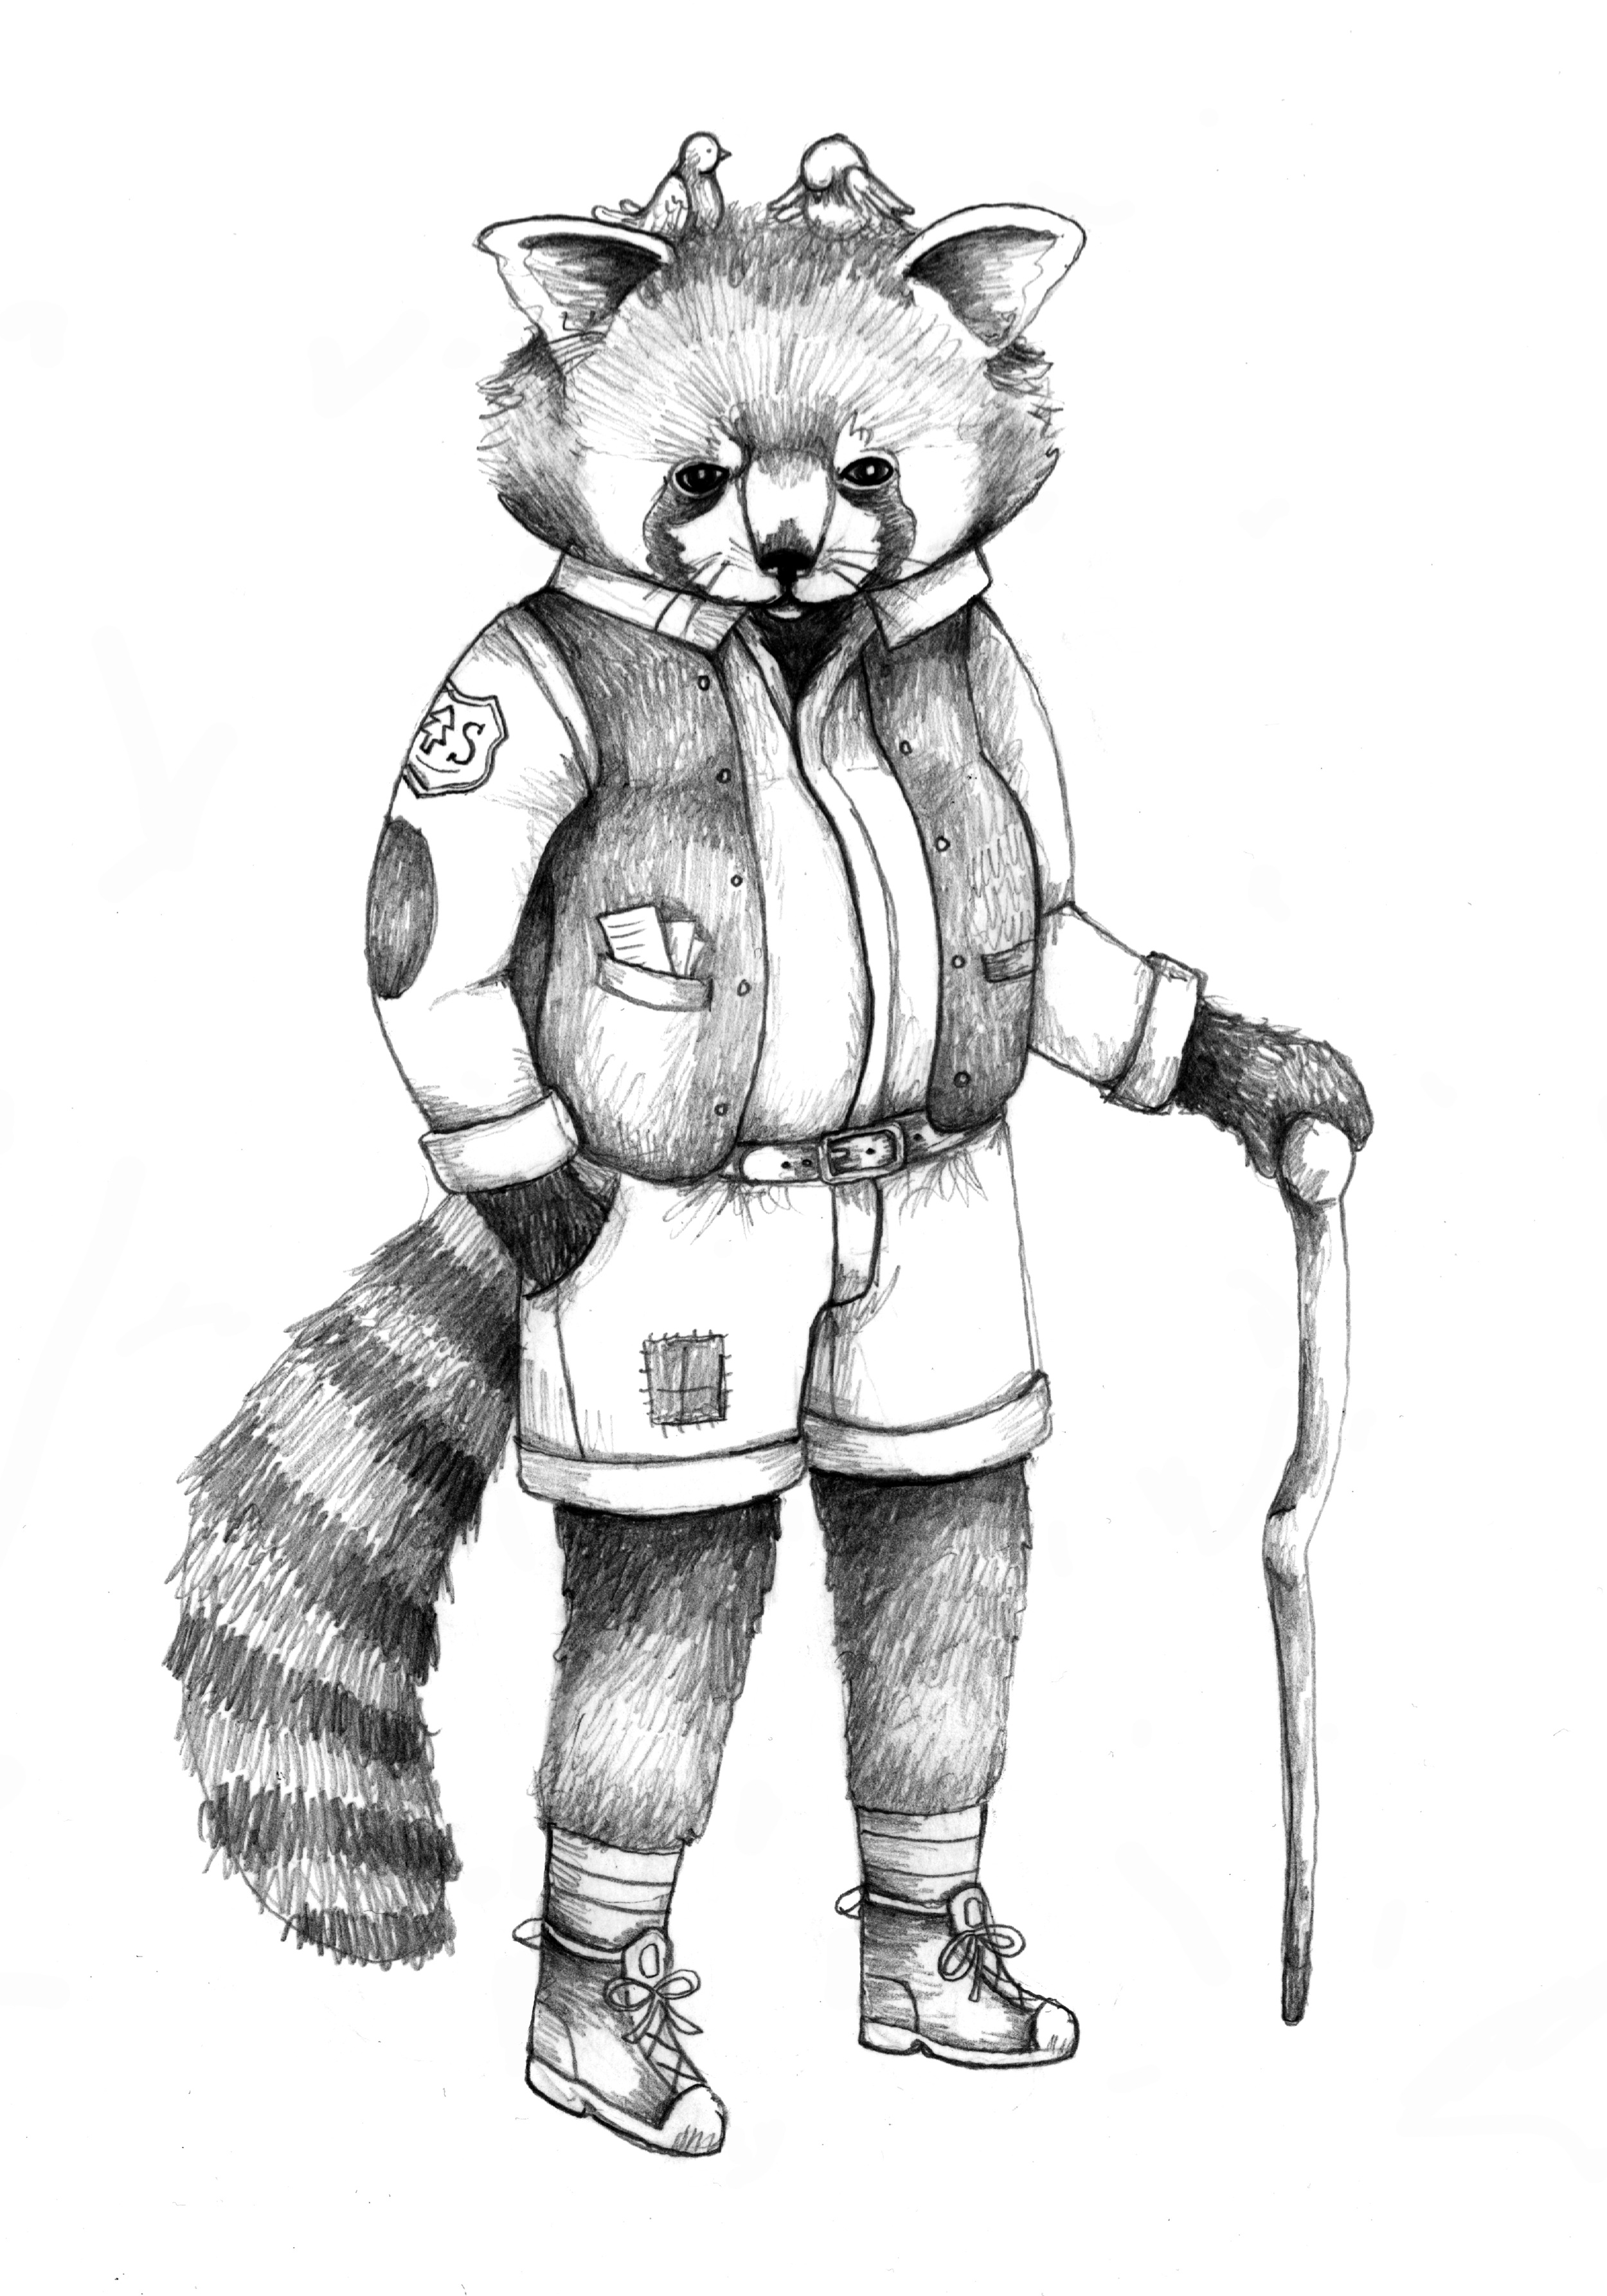 Starting with this pencil drawing of a cool Red Panda Ranger...